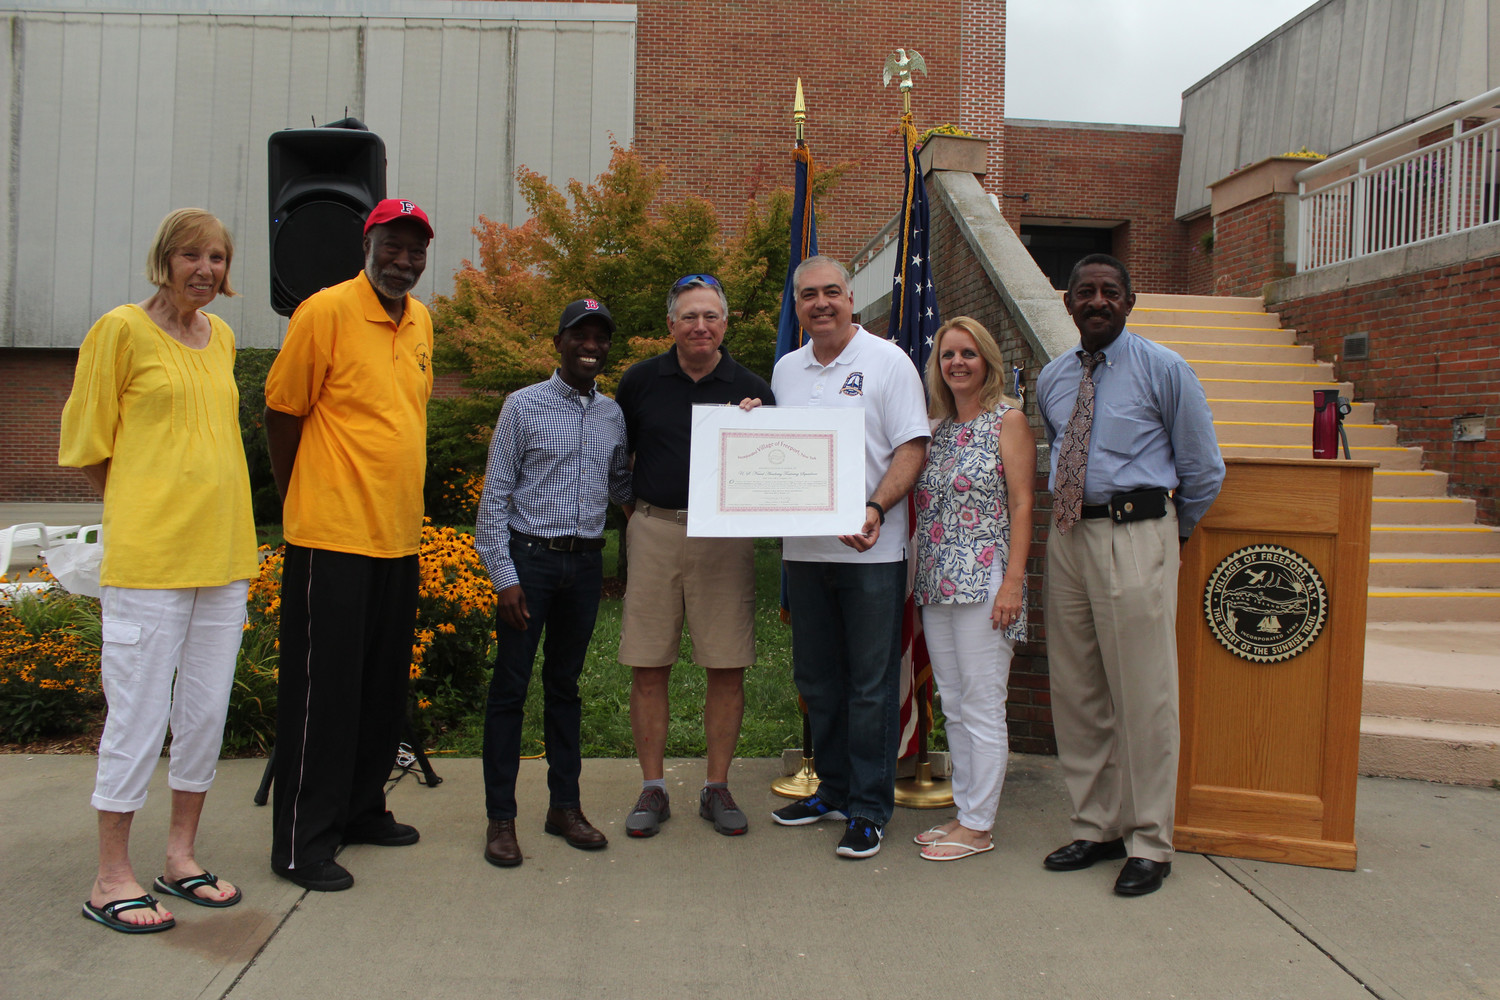 Debra Mulé is often seen at events throughout the community. Last summer she welcomed cadets from the U.S. Naval Academy. From left were Village Historian Cynthia King, school board Members Ernie Kight and Anthony Miller, Capt. Rick Robey, Deputy Mayor George Martinez, Mulé and village Trustee Ron Ellerbee.